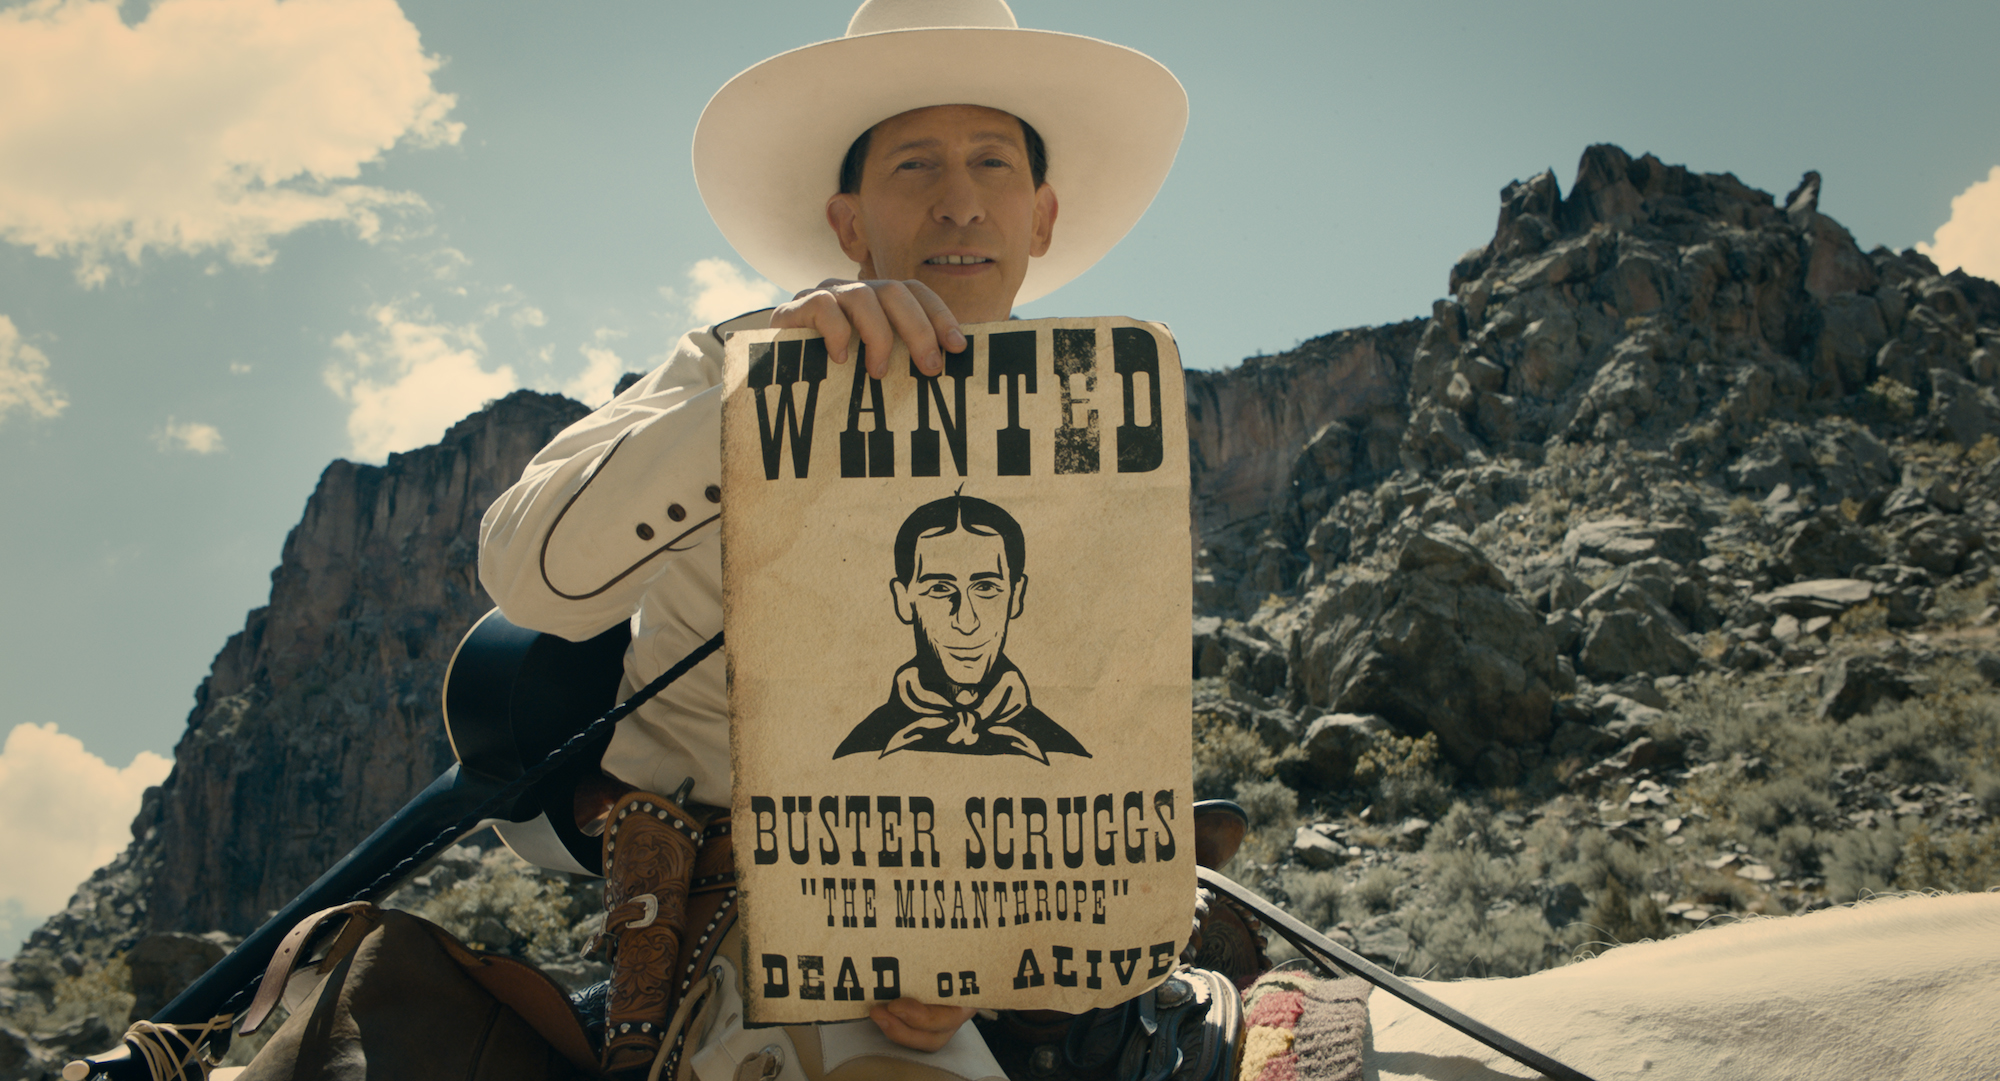 the-ballad-of-buster-scruggs-image-credit_-netflix